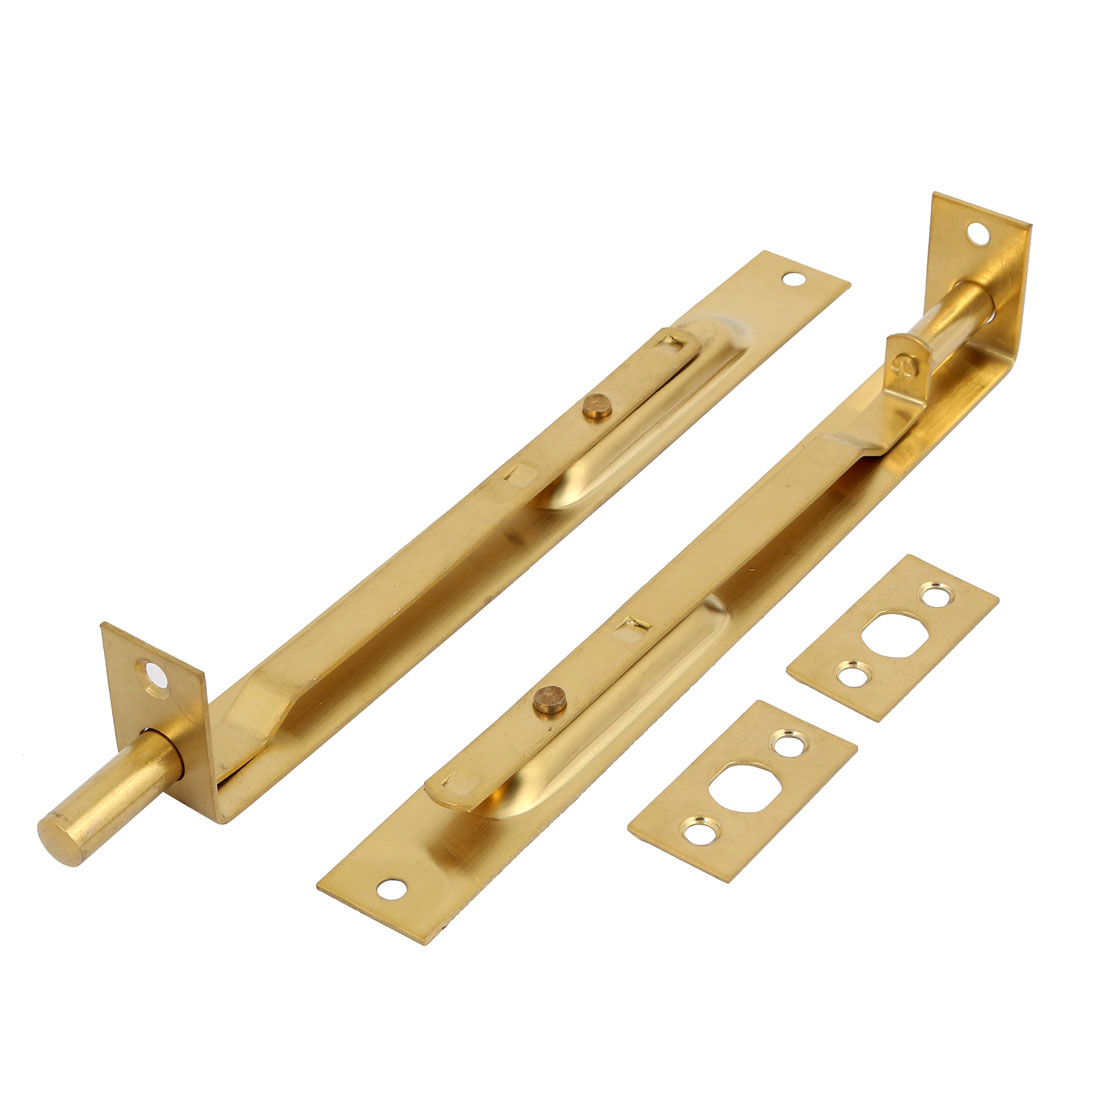 Unique Bargains 2 Pcs 8 Inch Length Stainless Steel Gold Tone Door